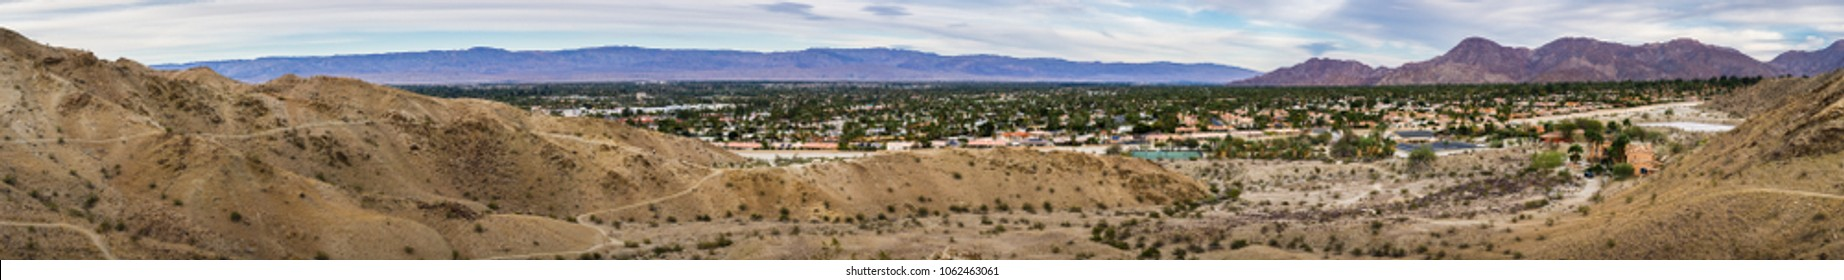 Panoramic view of Palm Desert, Coachella Valley, California